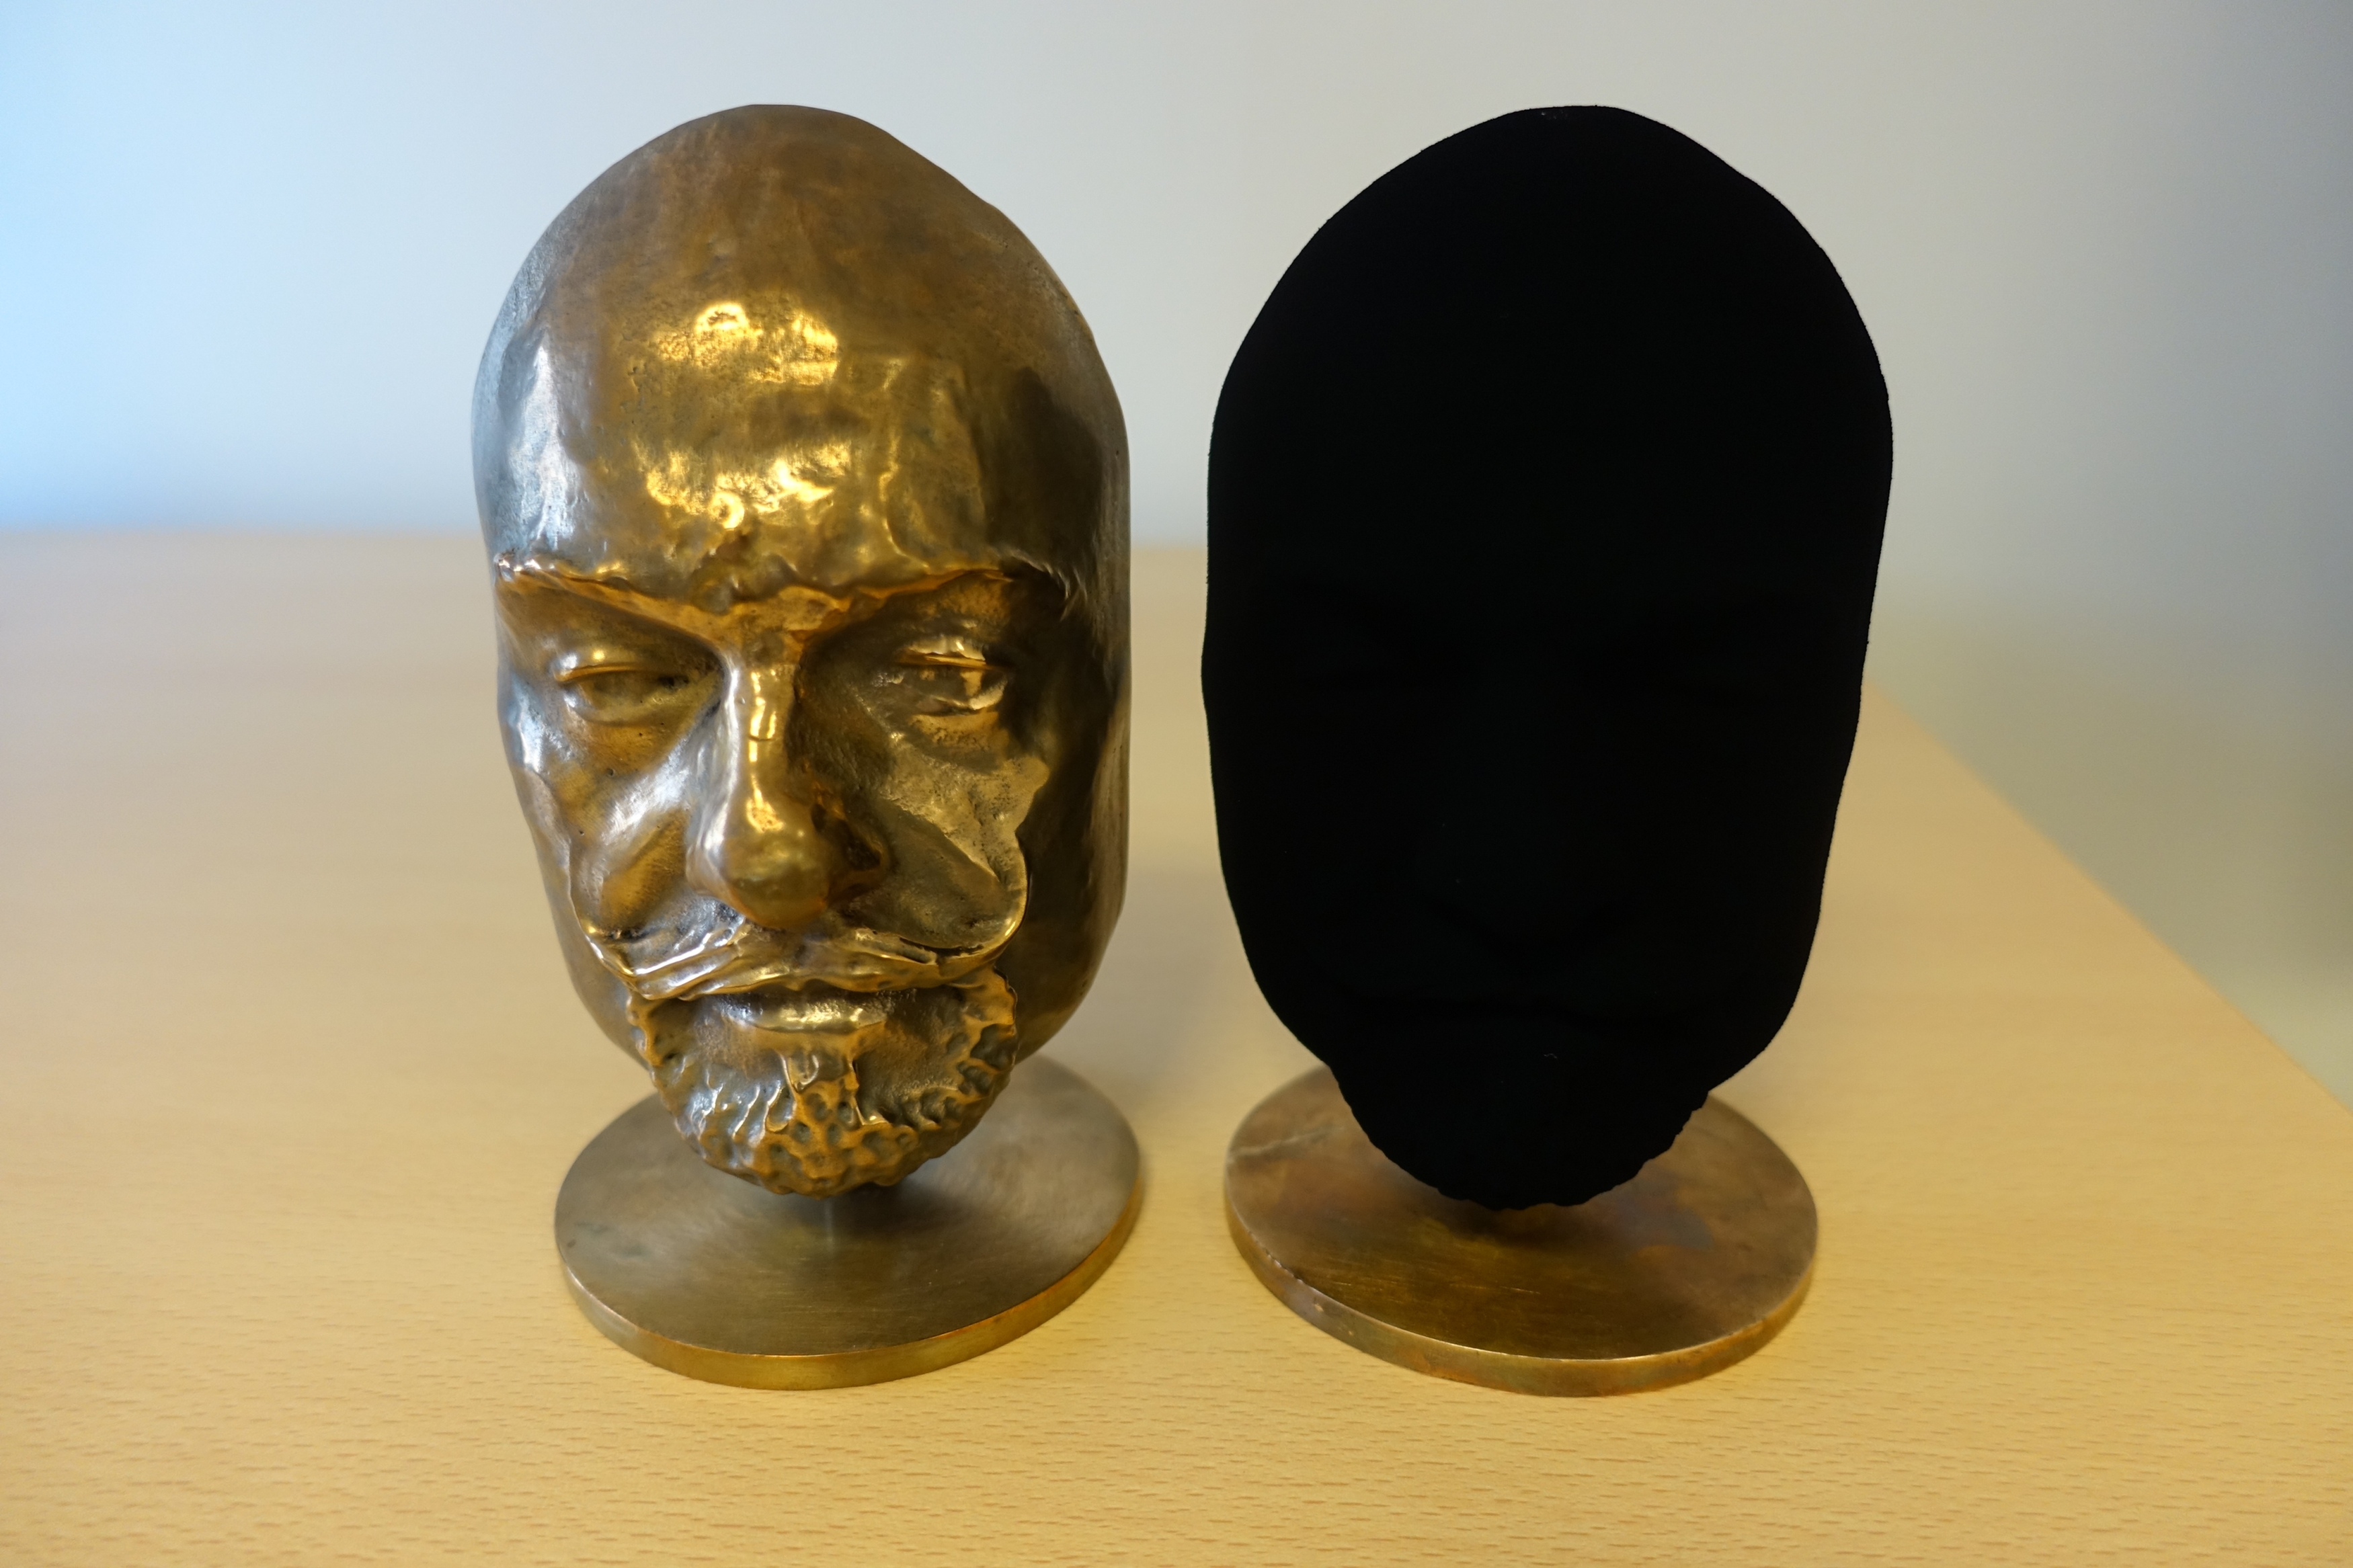 Vantablack: It's blacker than black, but where is the world's darkest material being used?